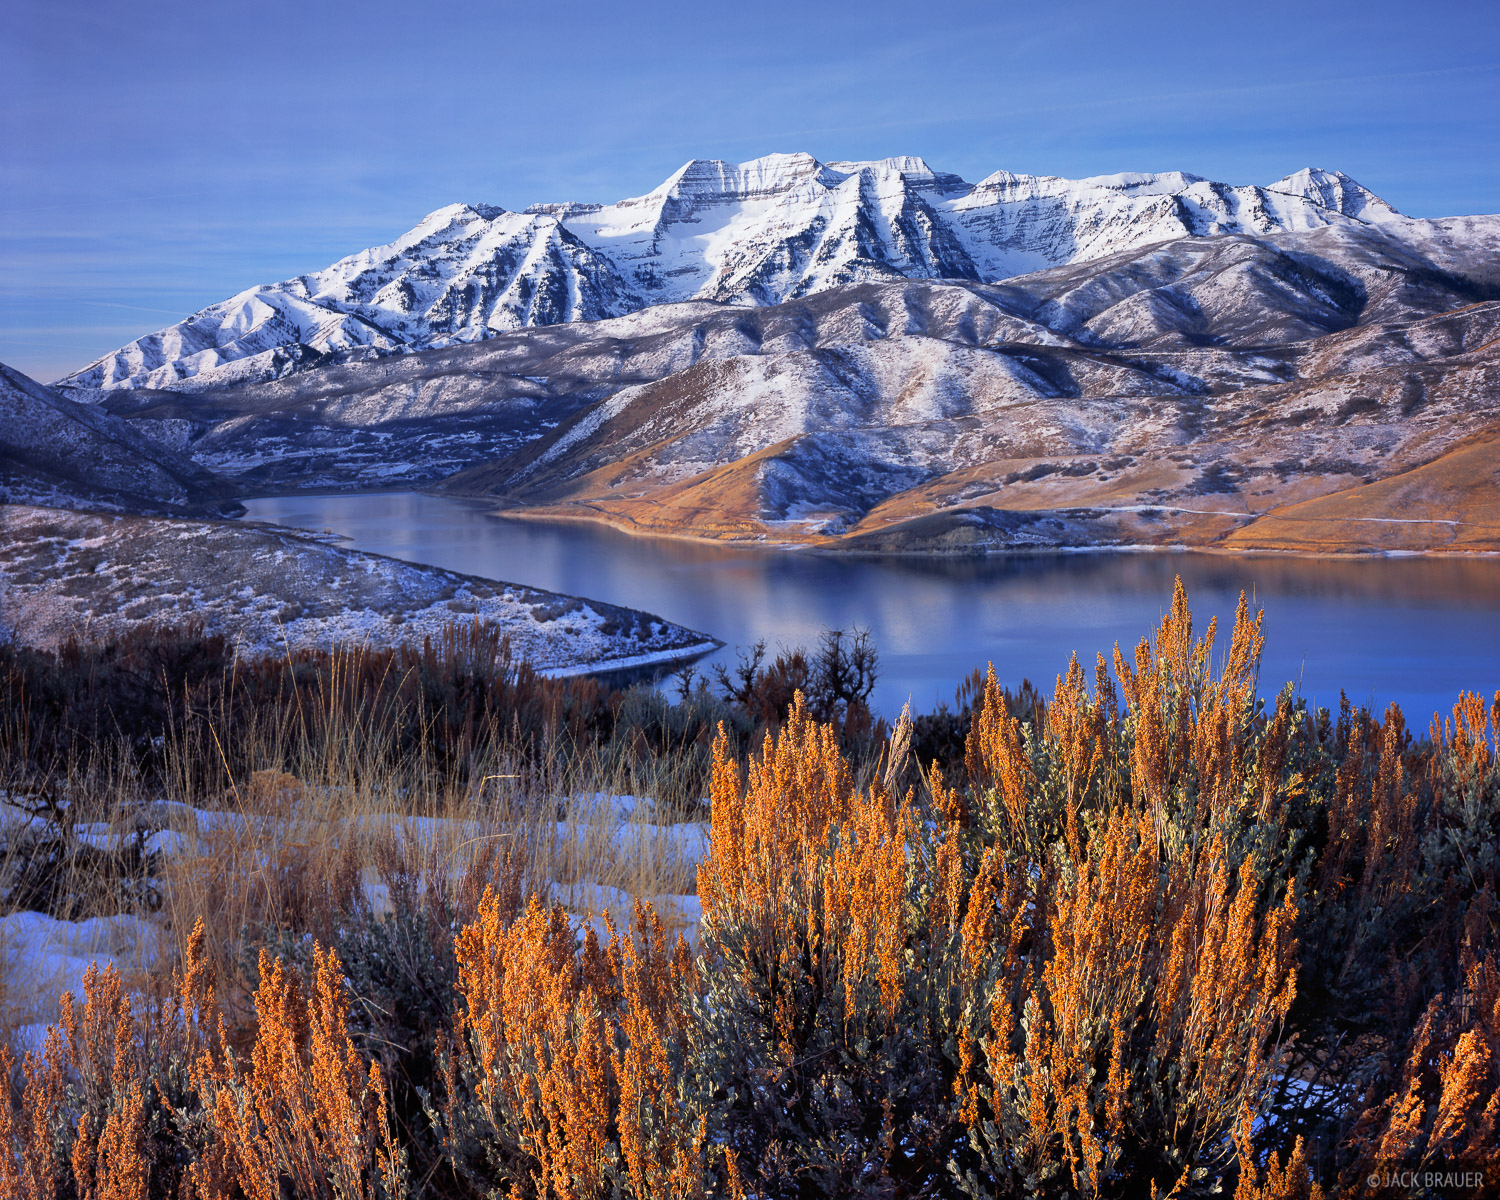 Mt. Timpanogos, Deer Creek Reservoir, Wasatch Range, Utah, photo